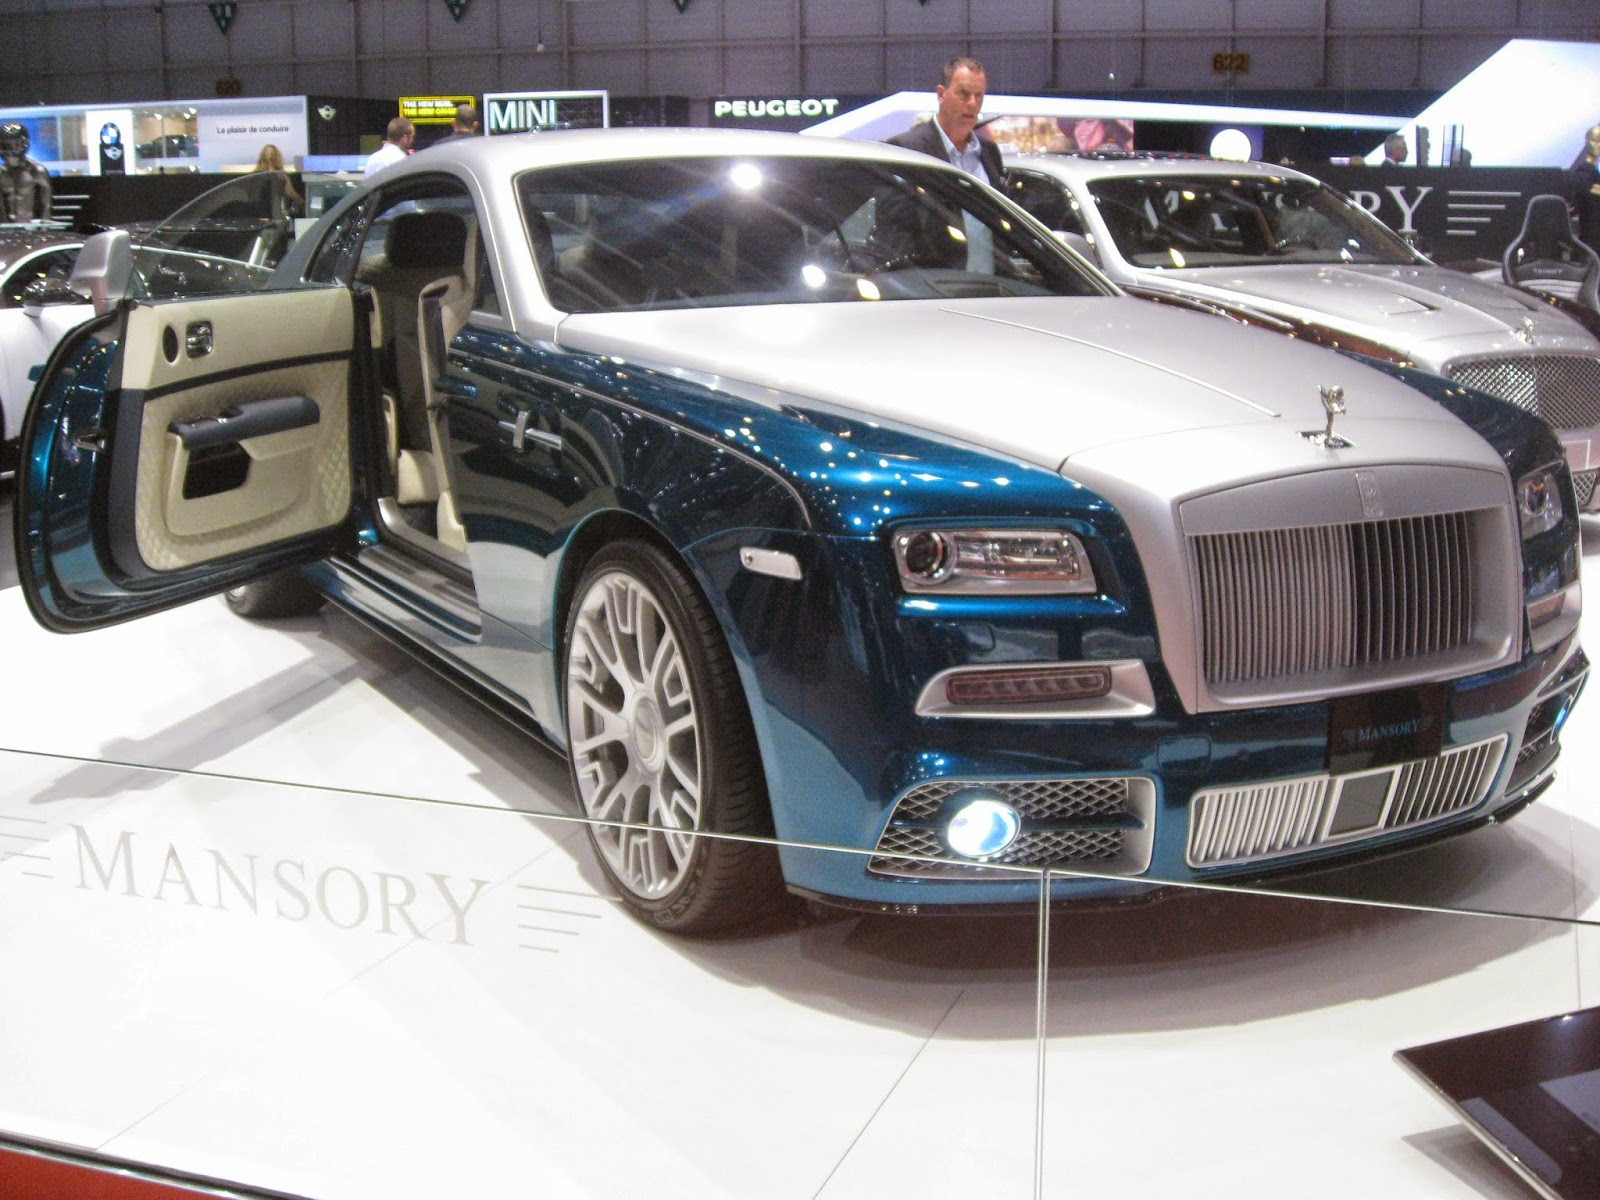 rather liked the Mansory Rolls-Royce Wraith, in particular its -1.bp.blogspot.com